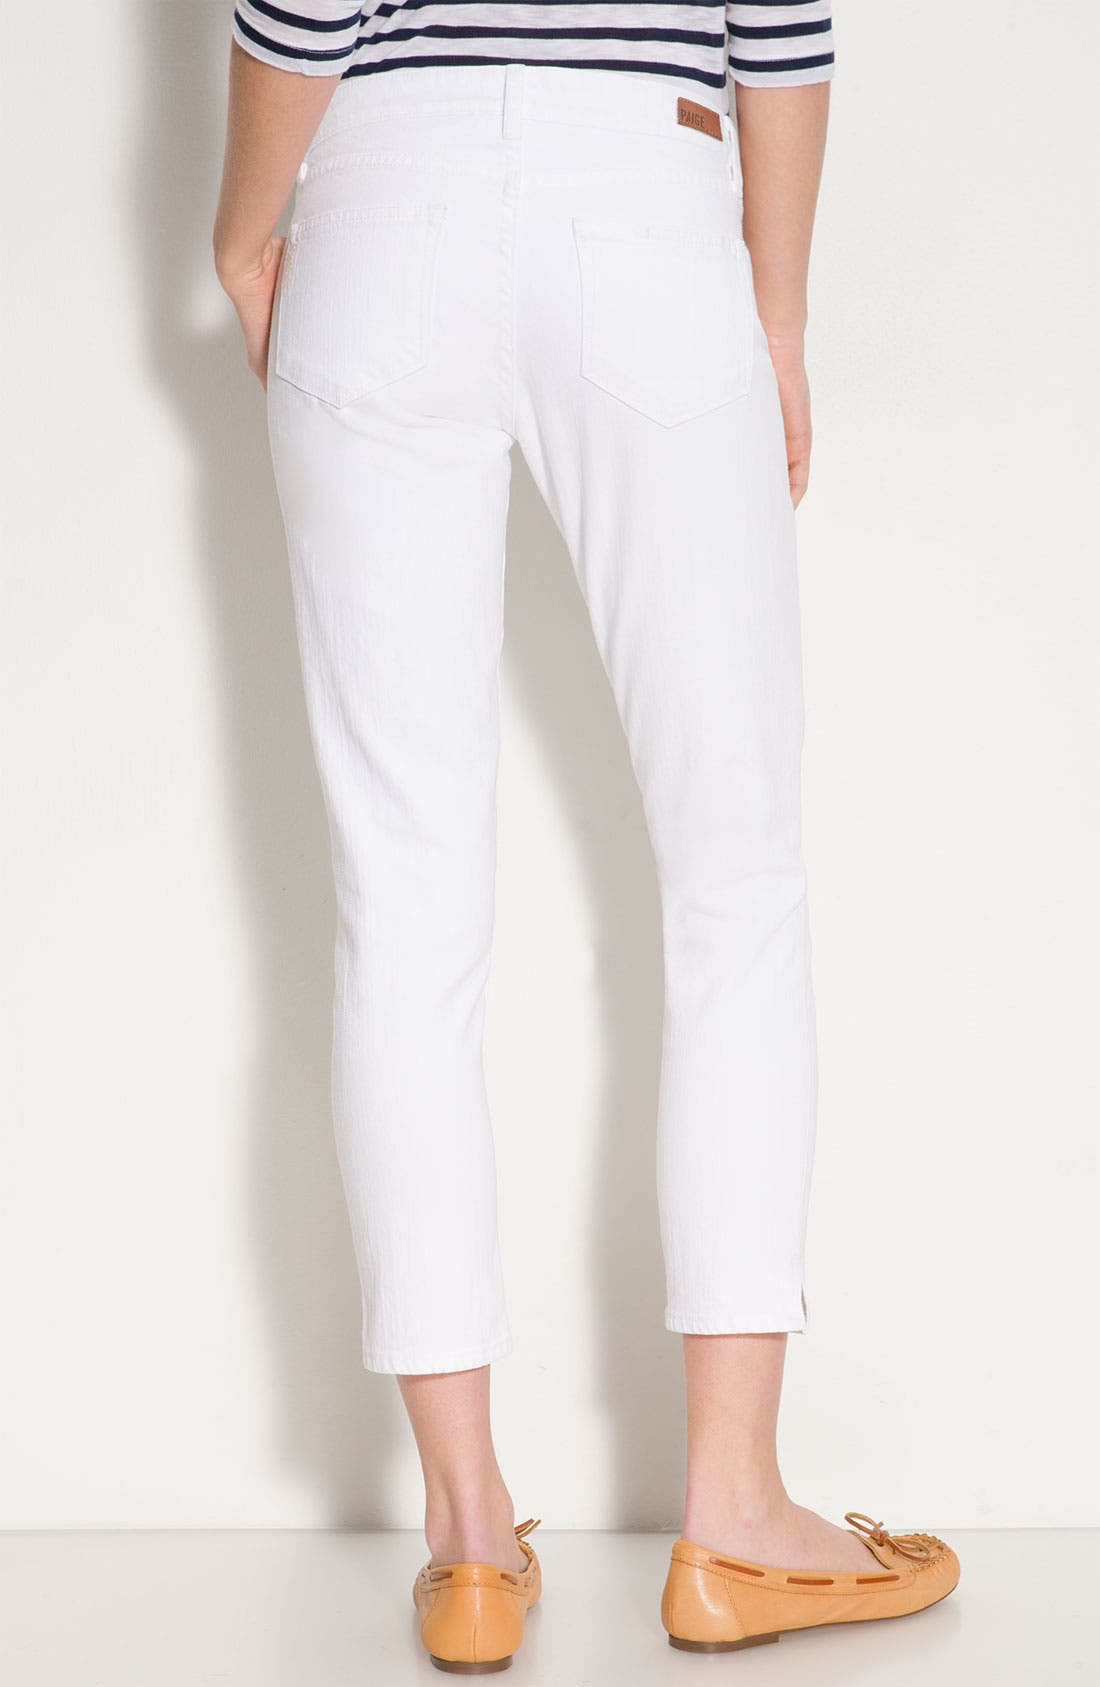 Main Image - Paige Denim 'Kylie' Crop Skinny Jeans (Optic White Wash)